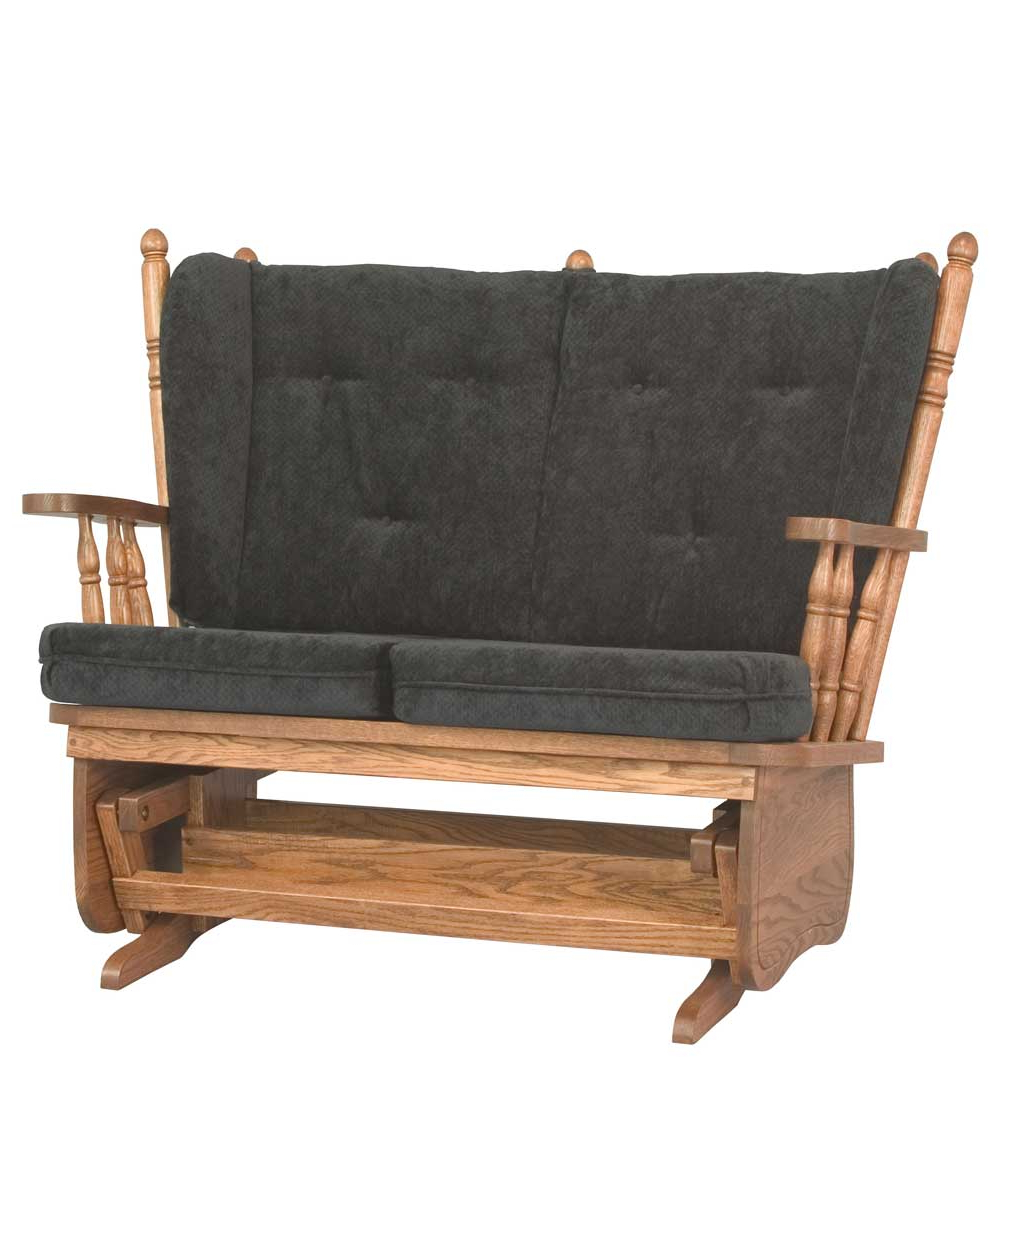 2019 4 Post Low Back Loveseat Glider Intended For Low Back Glider Benches (View 9 of 30)